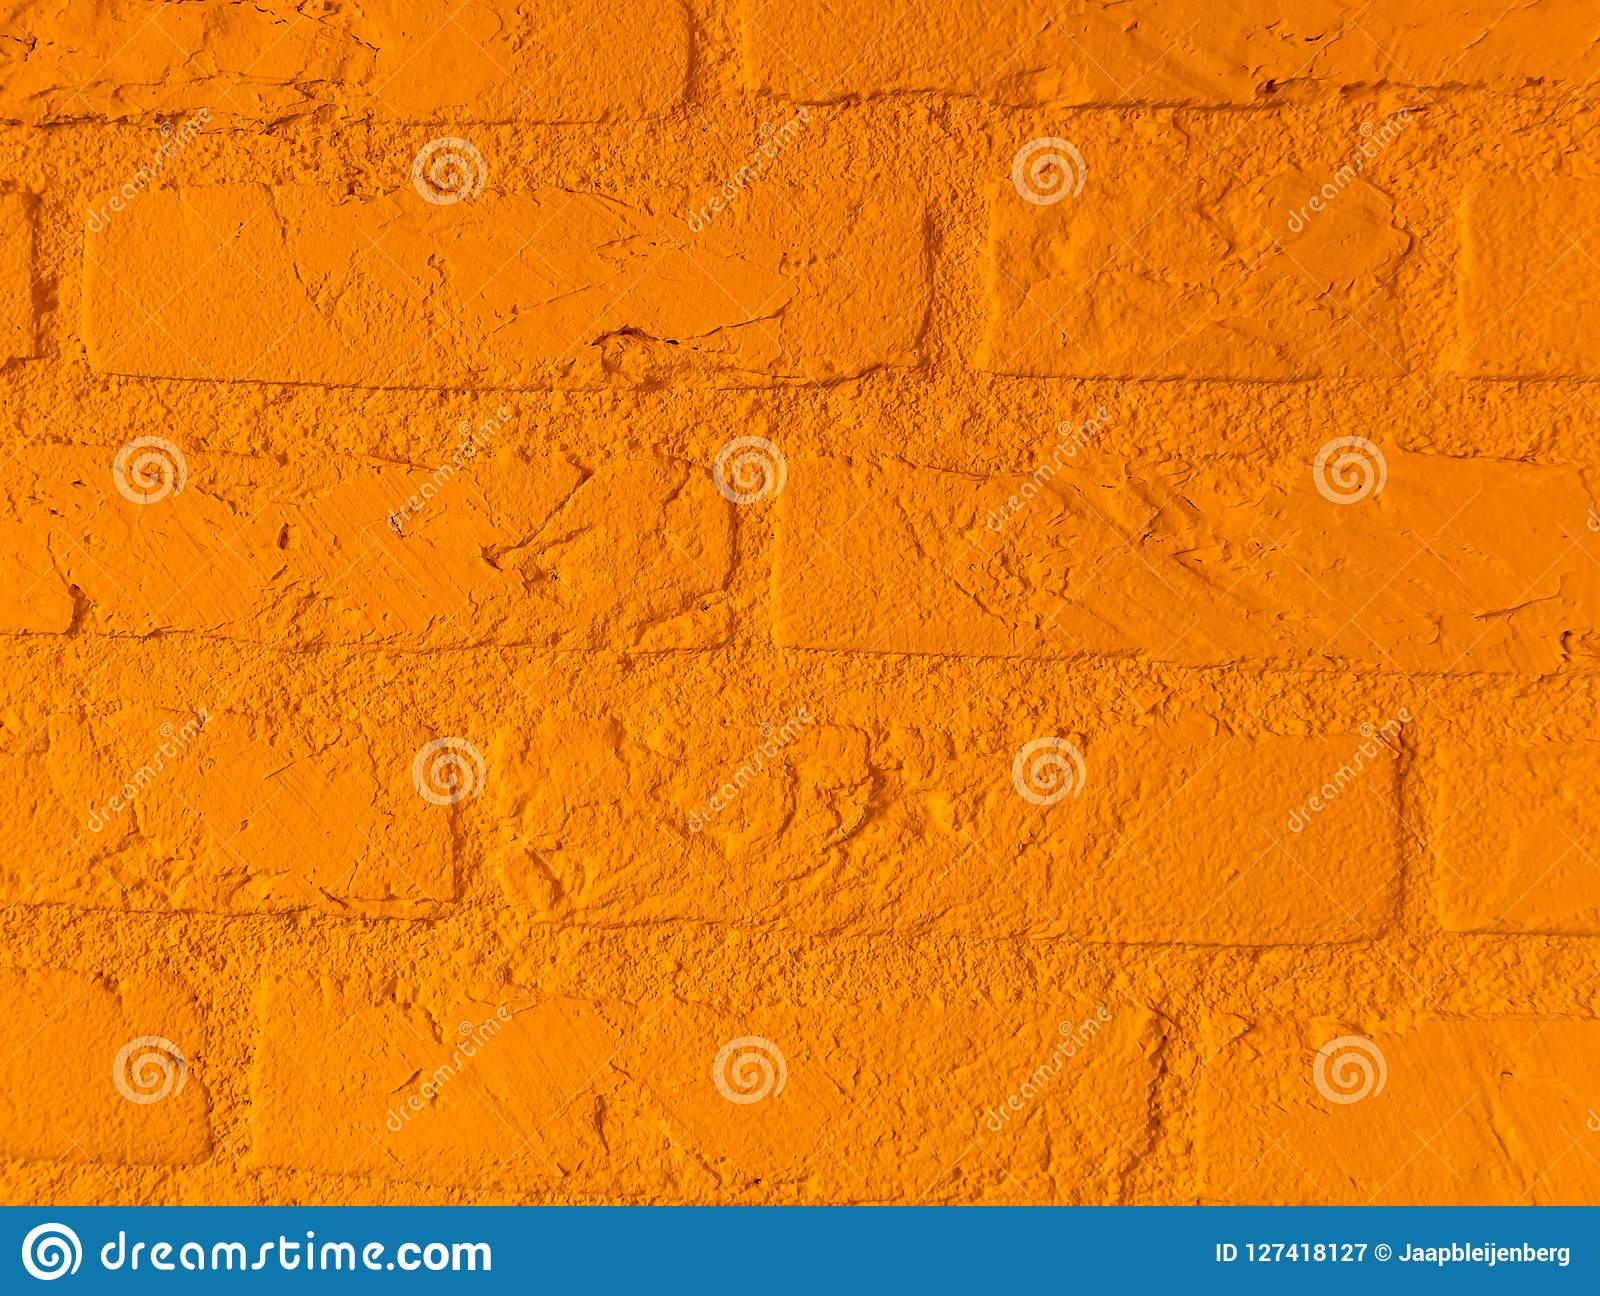 Modern vibrant orange stone brick wall with big bricks close up background pattern